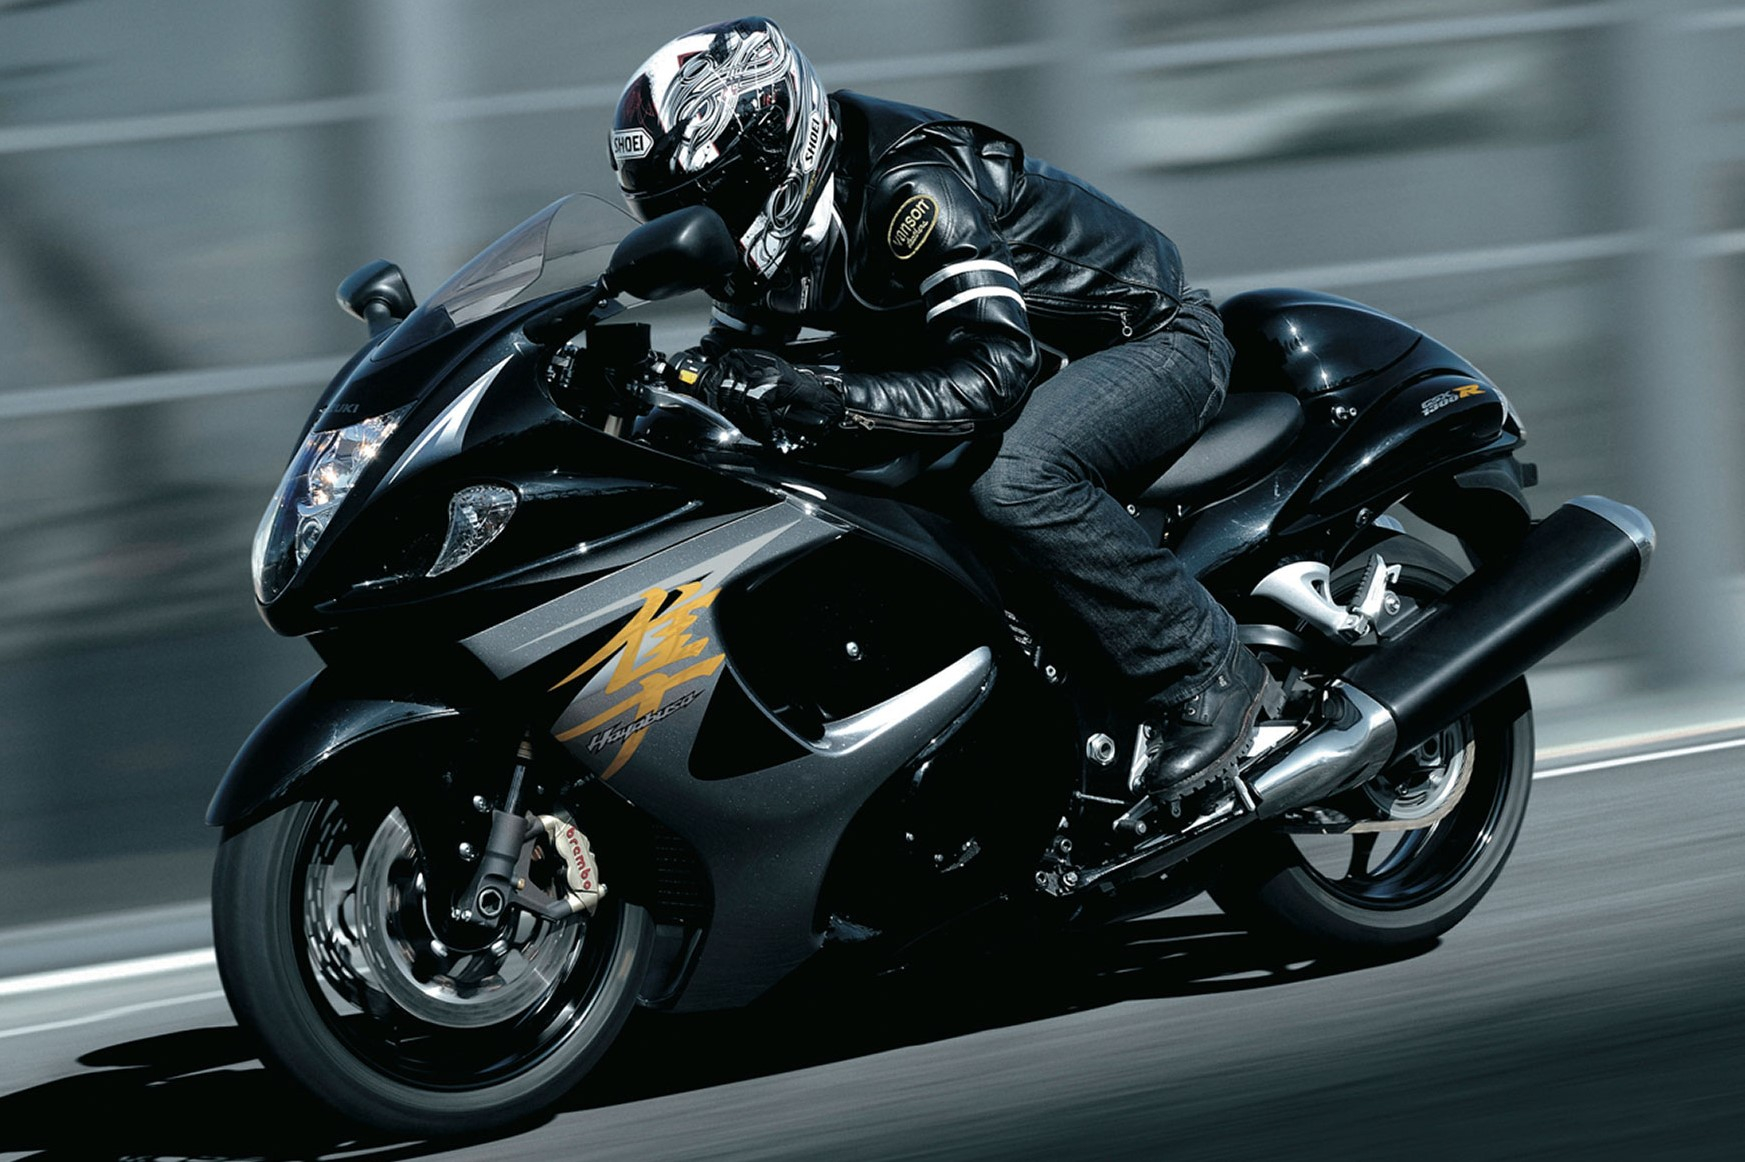 Automatic Transmission Motorcycle >> Suzuki Motorcycles In Future Might Have Semi Automatic Transmission